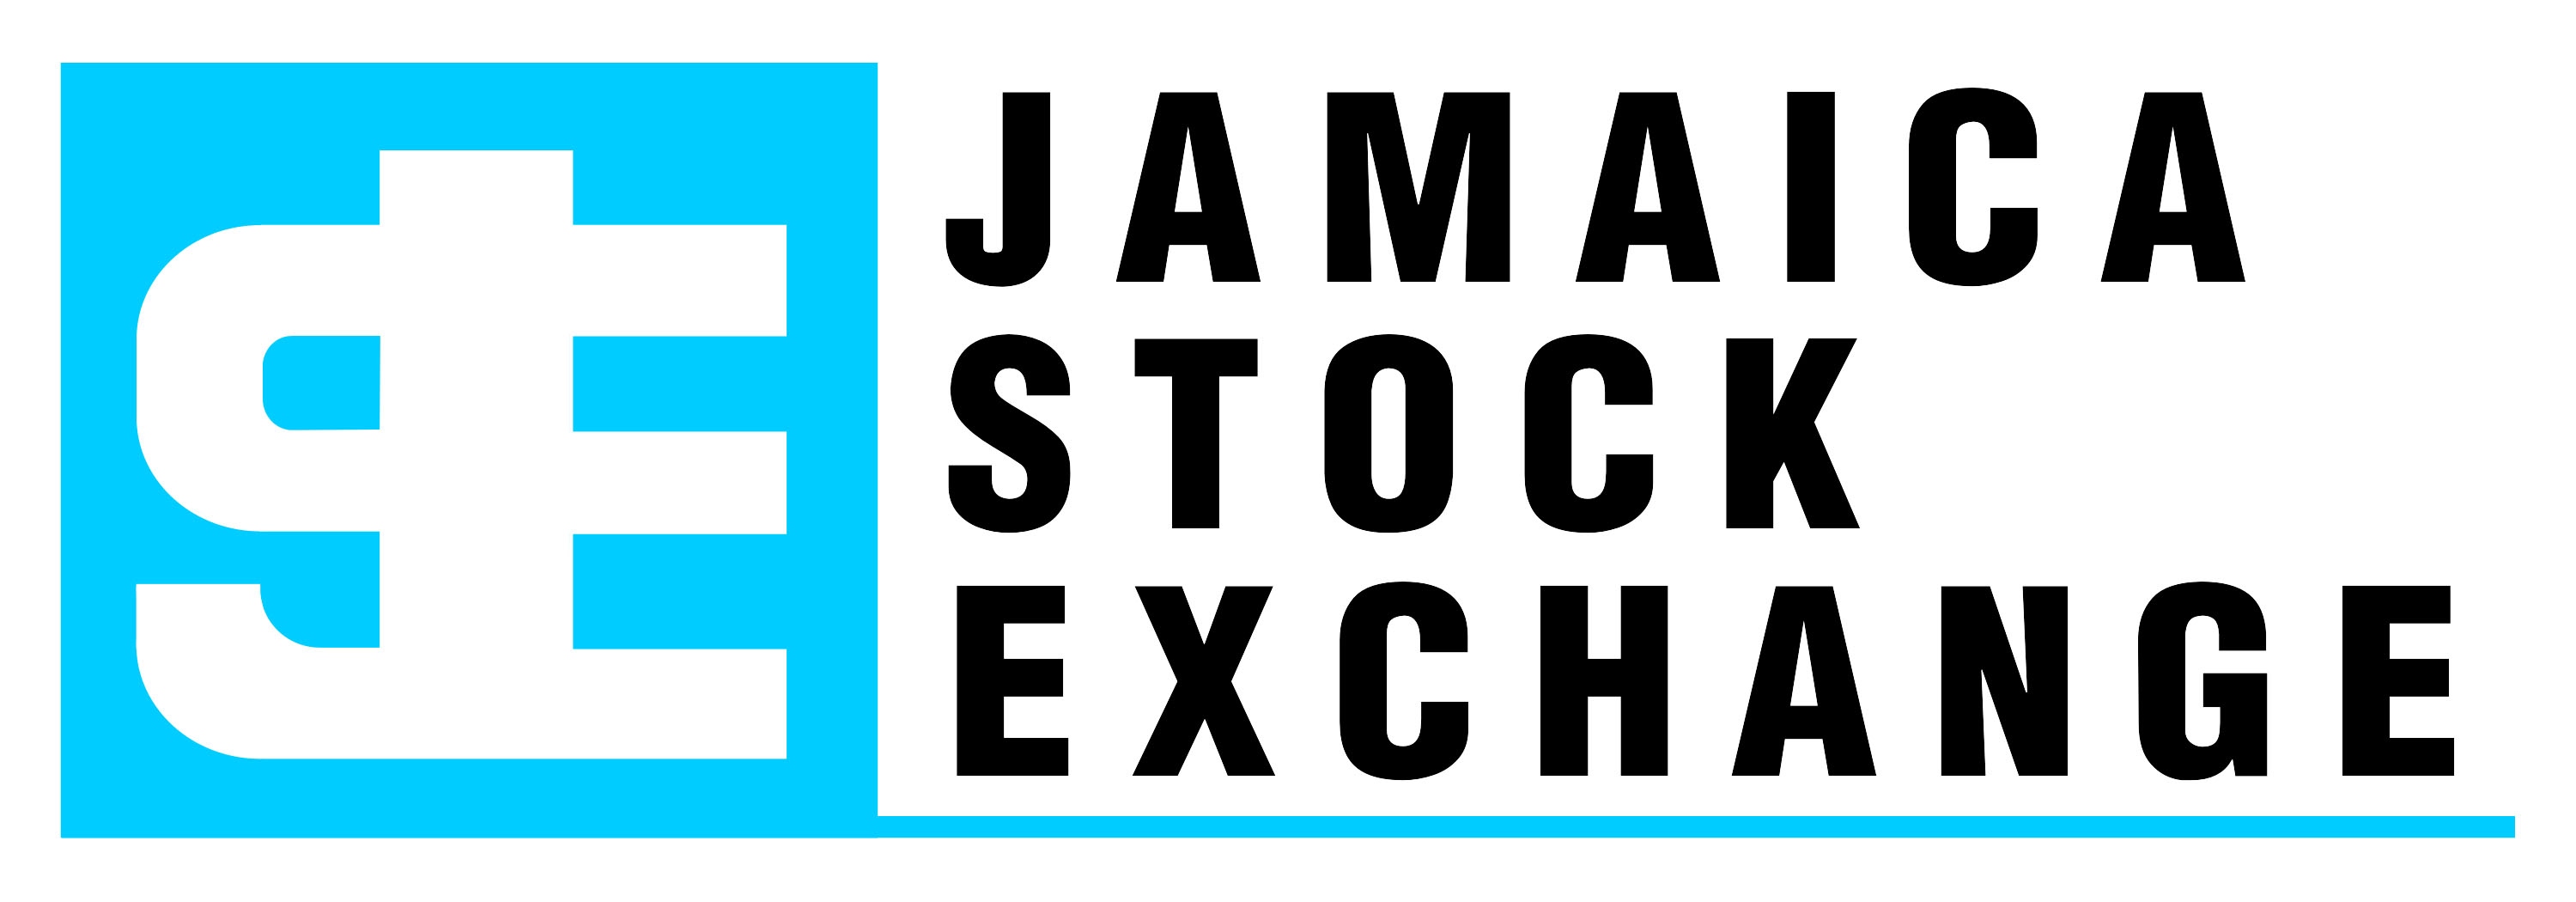 Jamaica Stock Exchange E-Campus Postgraduate Course Accredited by University Council of Jamaica (UCJ)